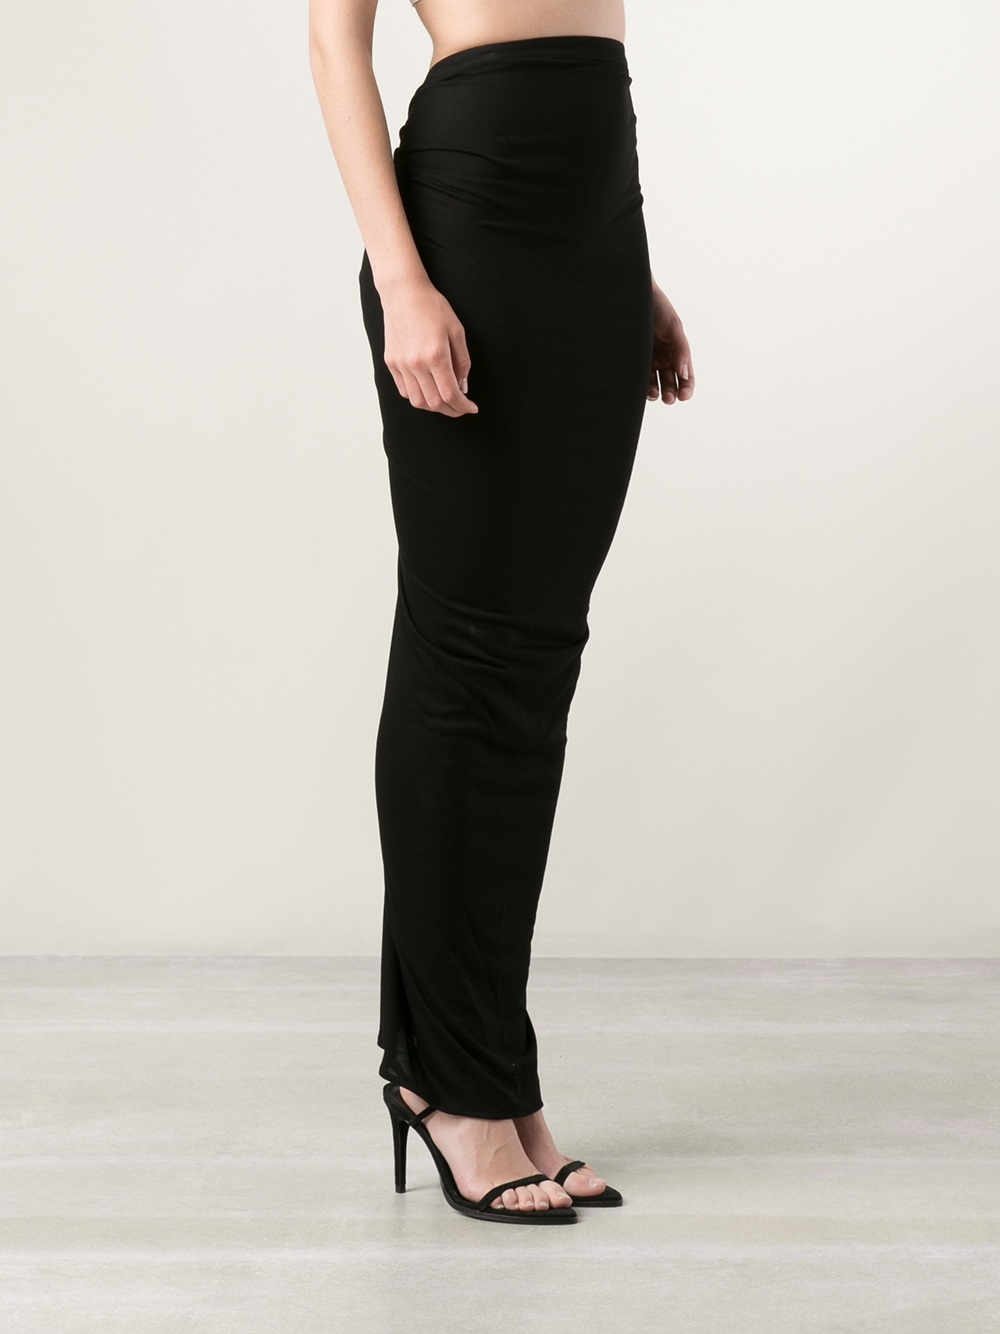 Givenchy Fitted Maxi Skirt in Black | Lyst